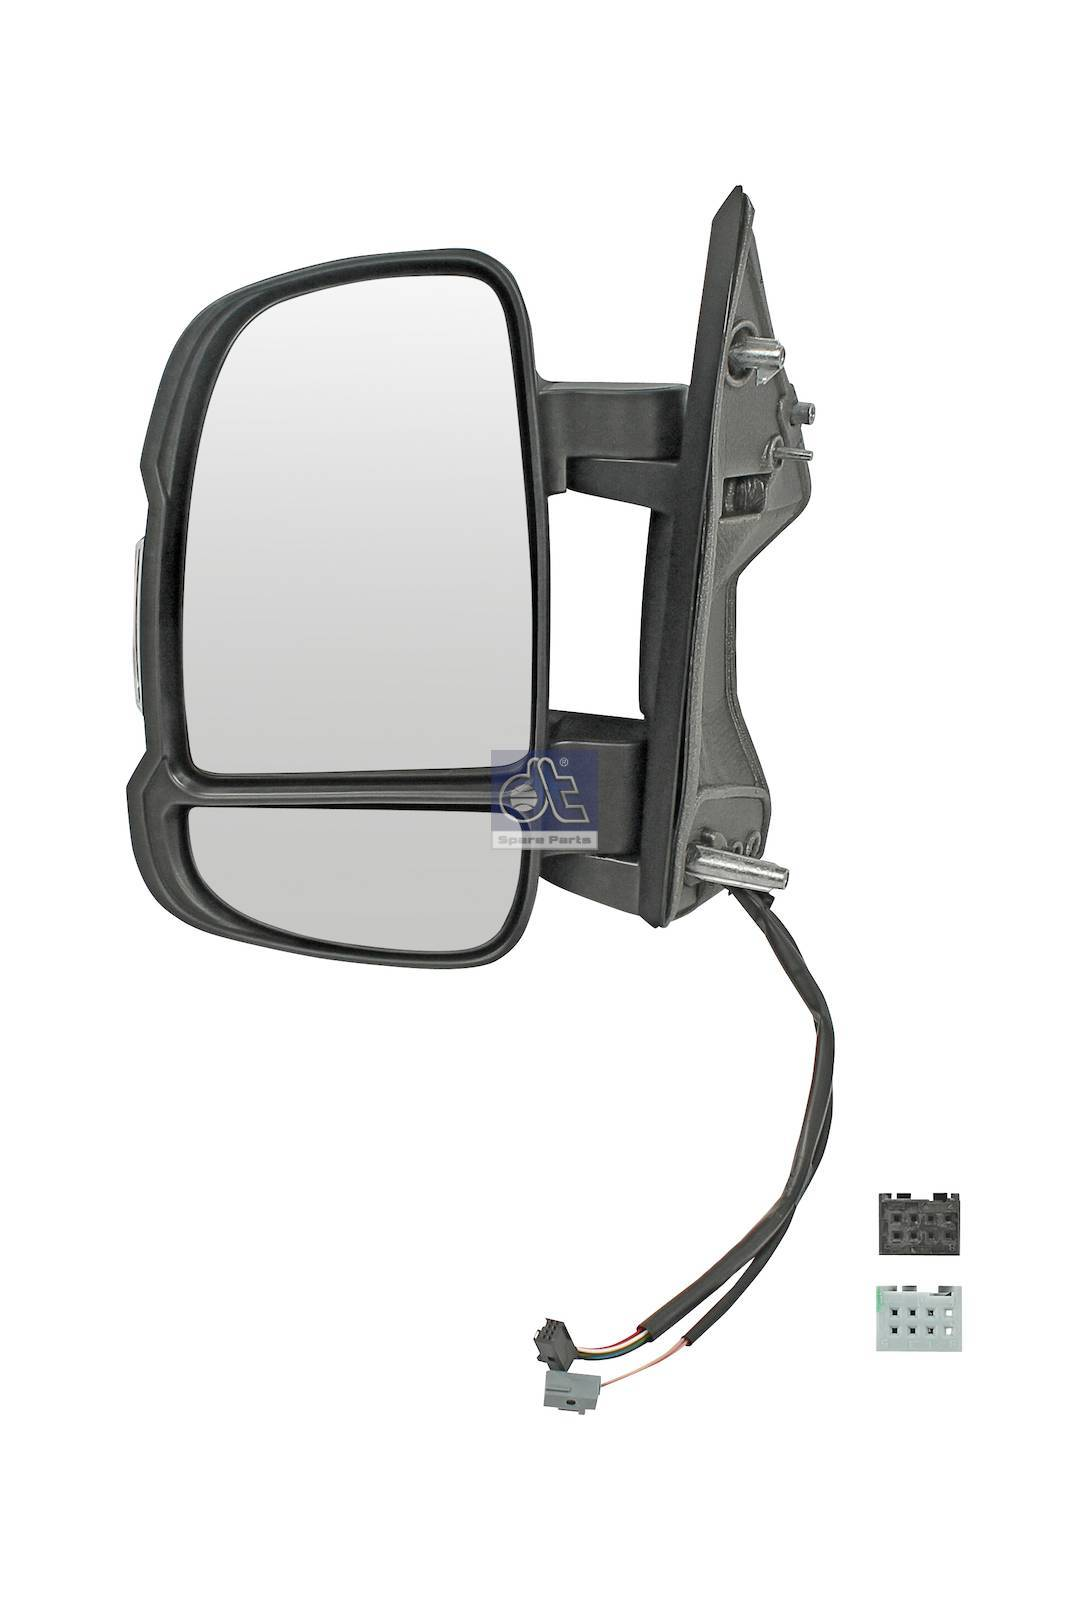 Main mirror, left, heated, electrical, with temperature sensor